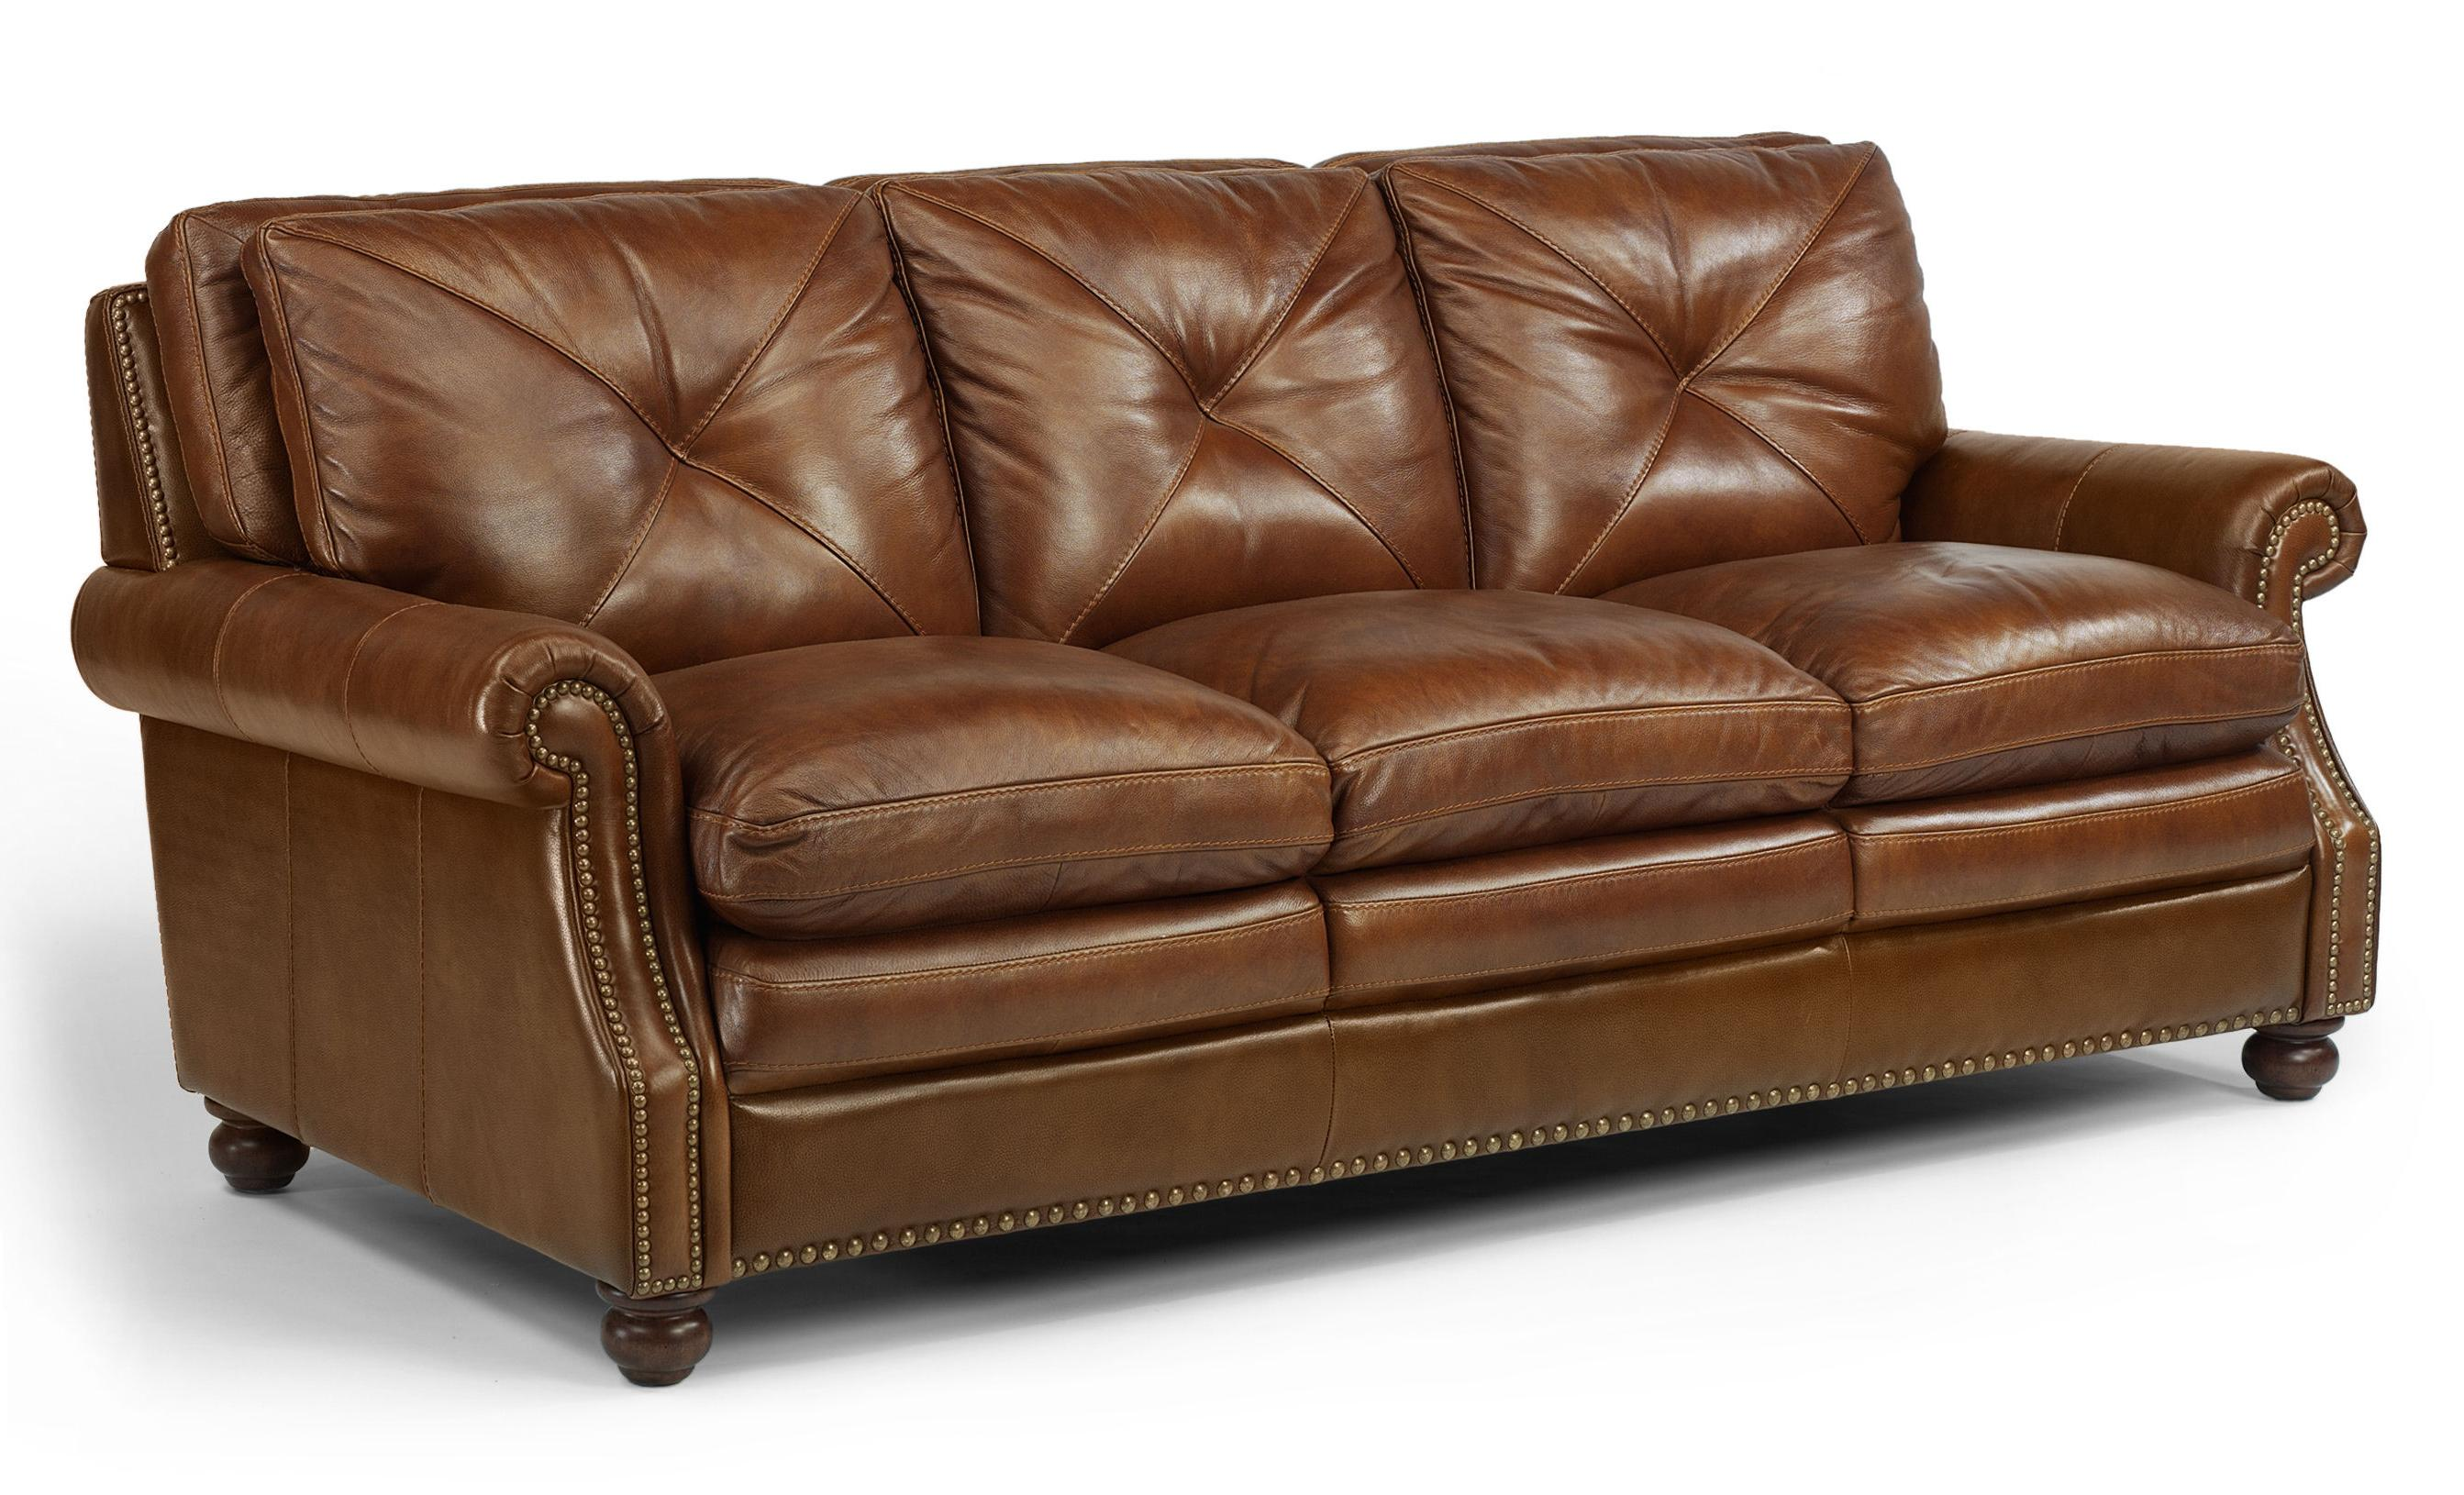 Laudes Suffolk Leather Stationary Sofa With Nailhead Trim By Flexsteel At Goffena Furniture Mattress Center